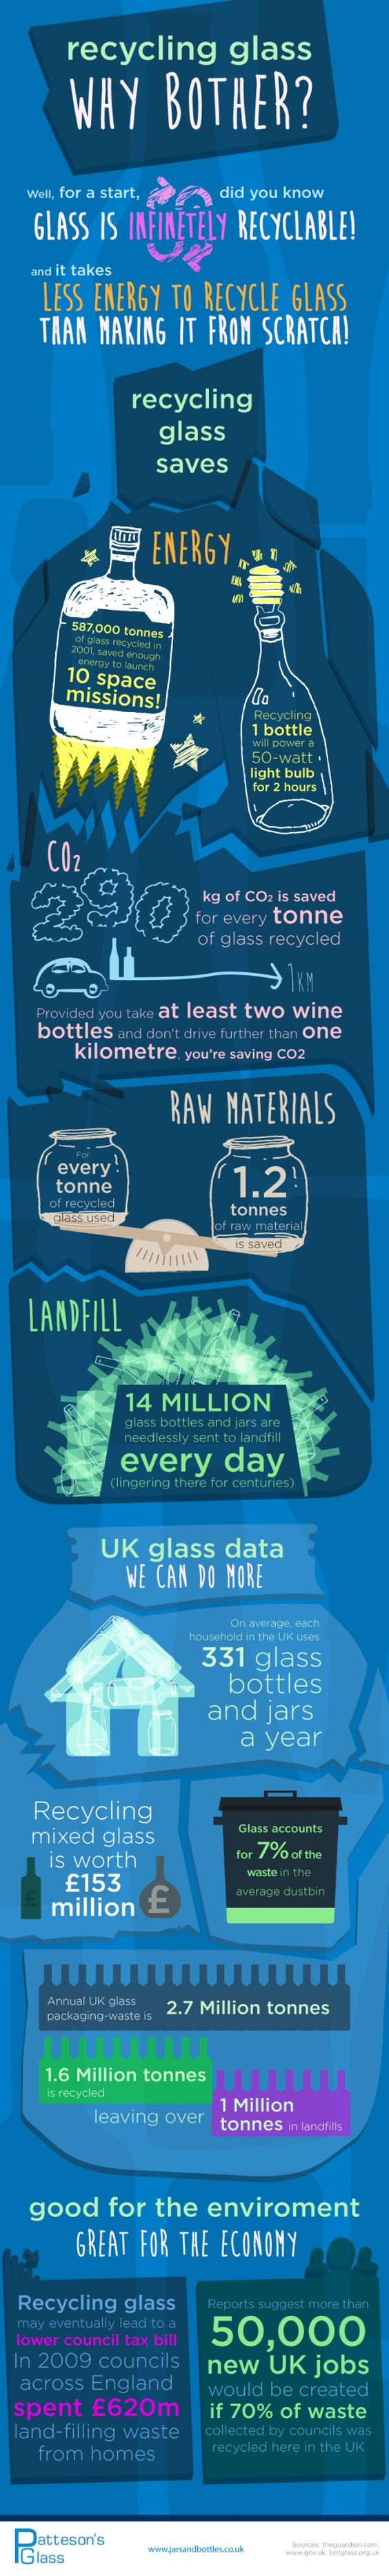 Angelica Zari: I think this image is a fantastic way of highlighting to us the the facts of recycling glass. & showing us that we can do way more to sustain our future even from just recycling this one product!!